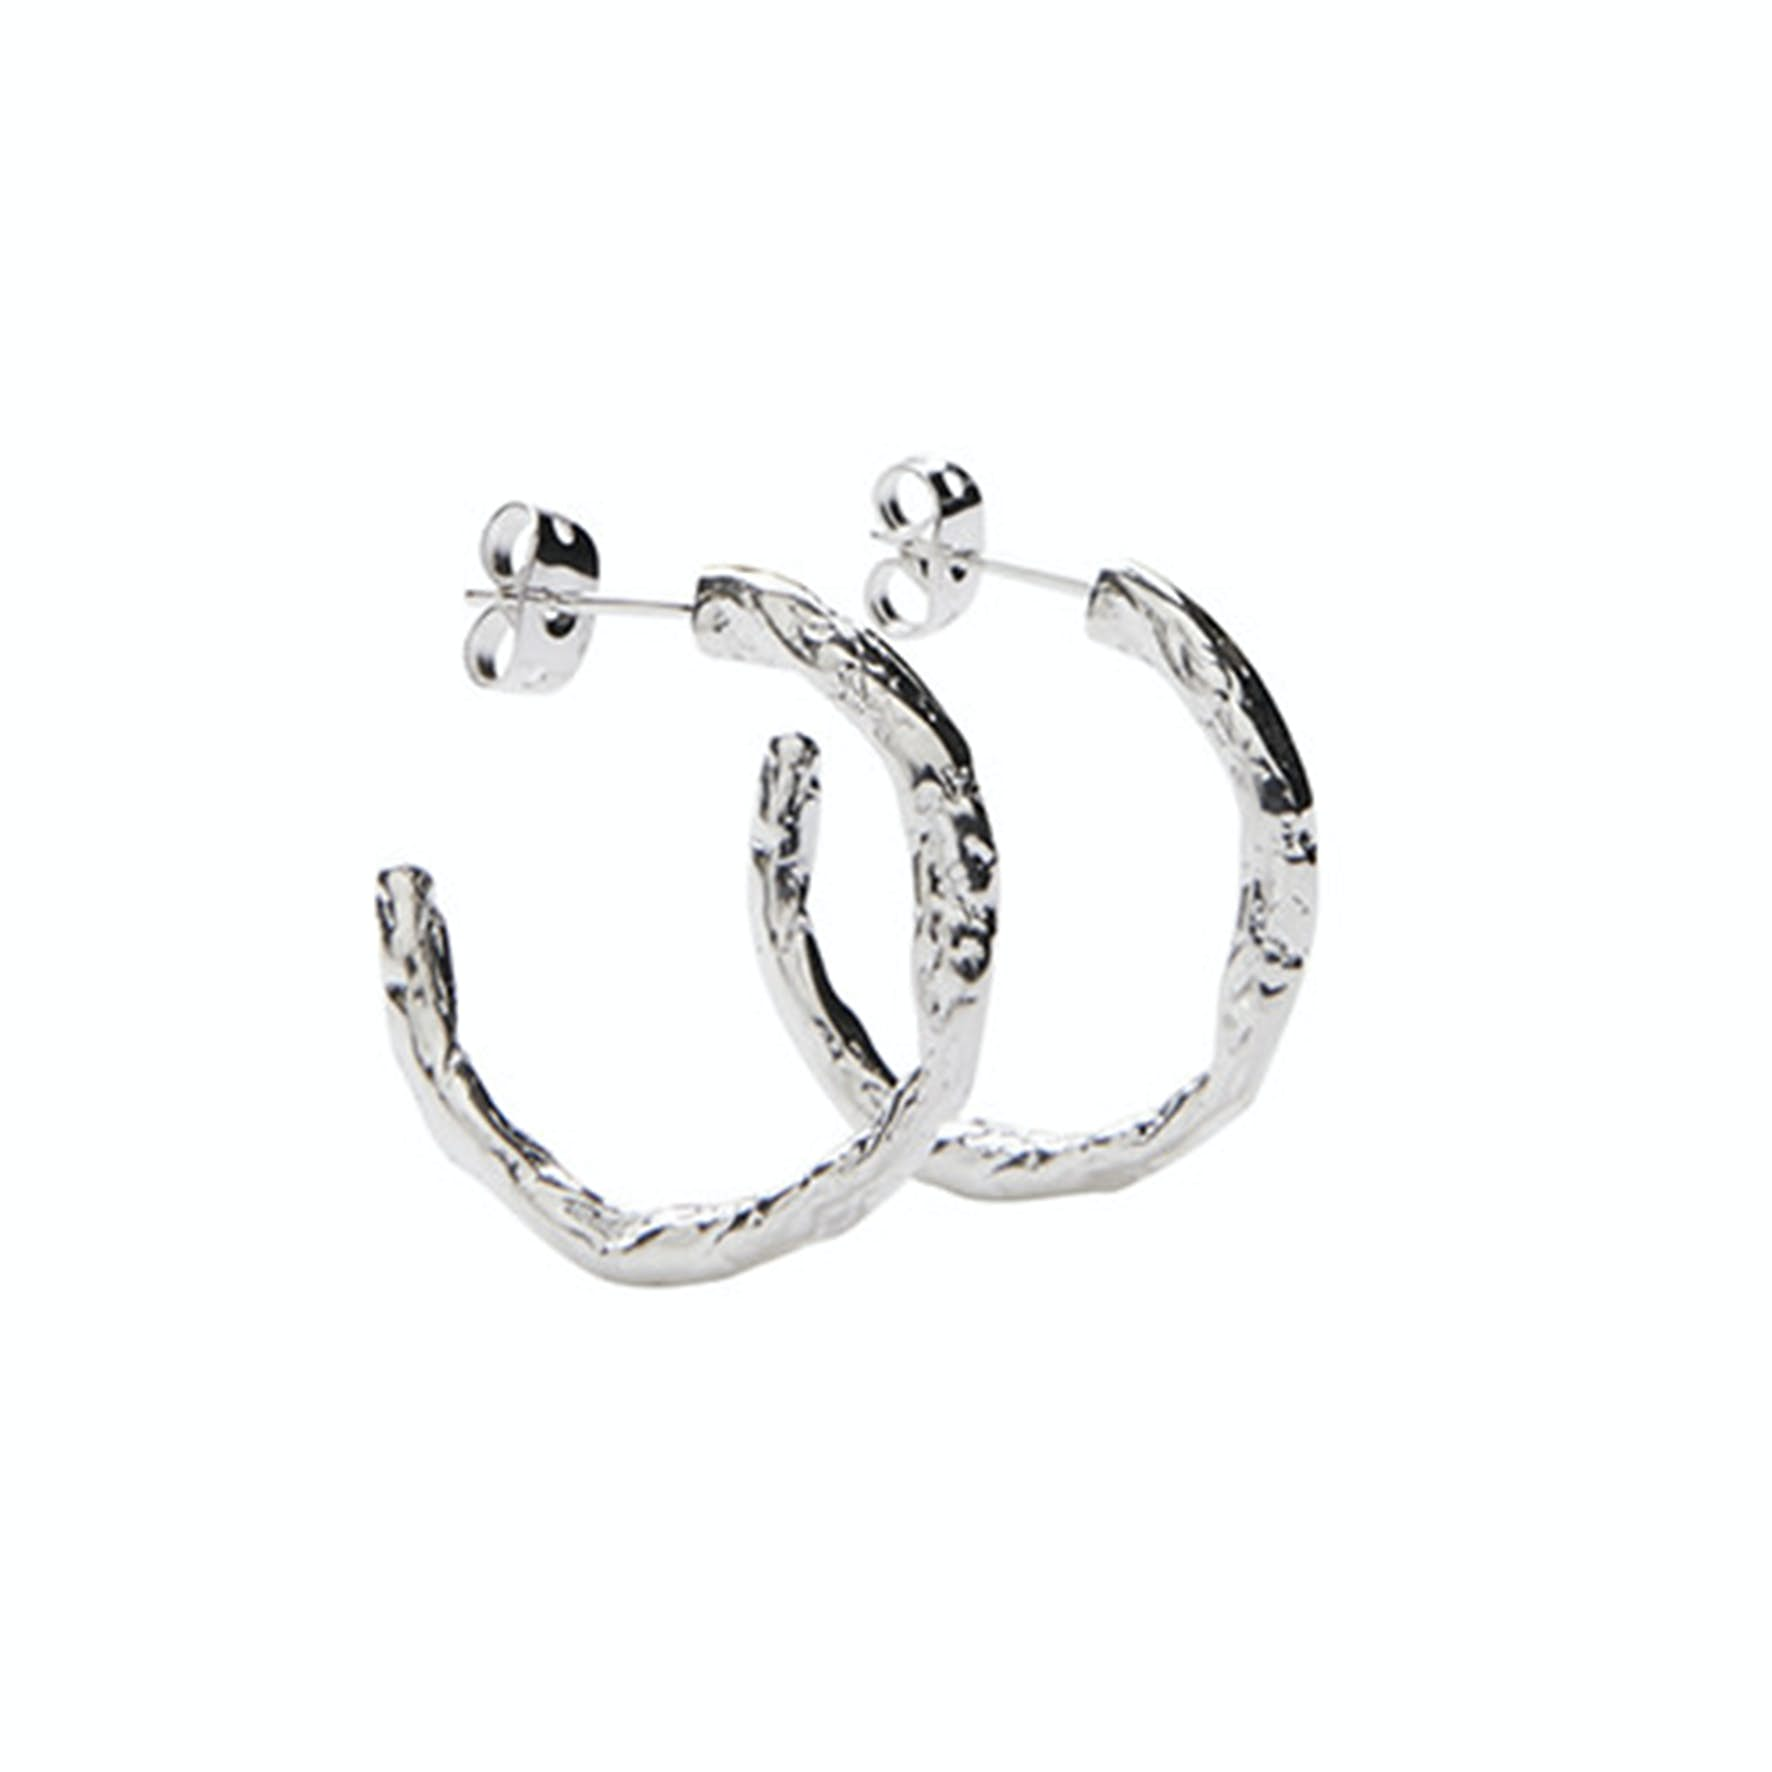 Petit Frigg Creols from Pico in Silver Sterling 925